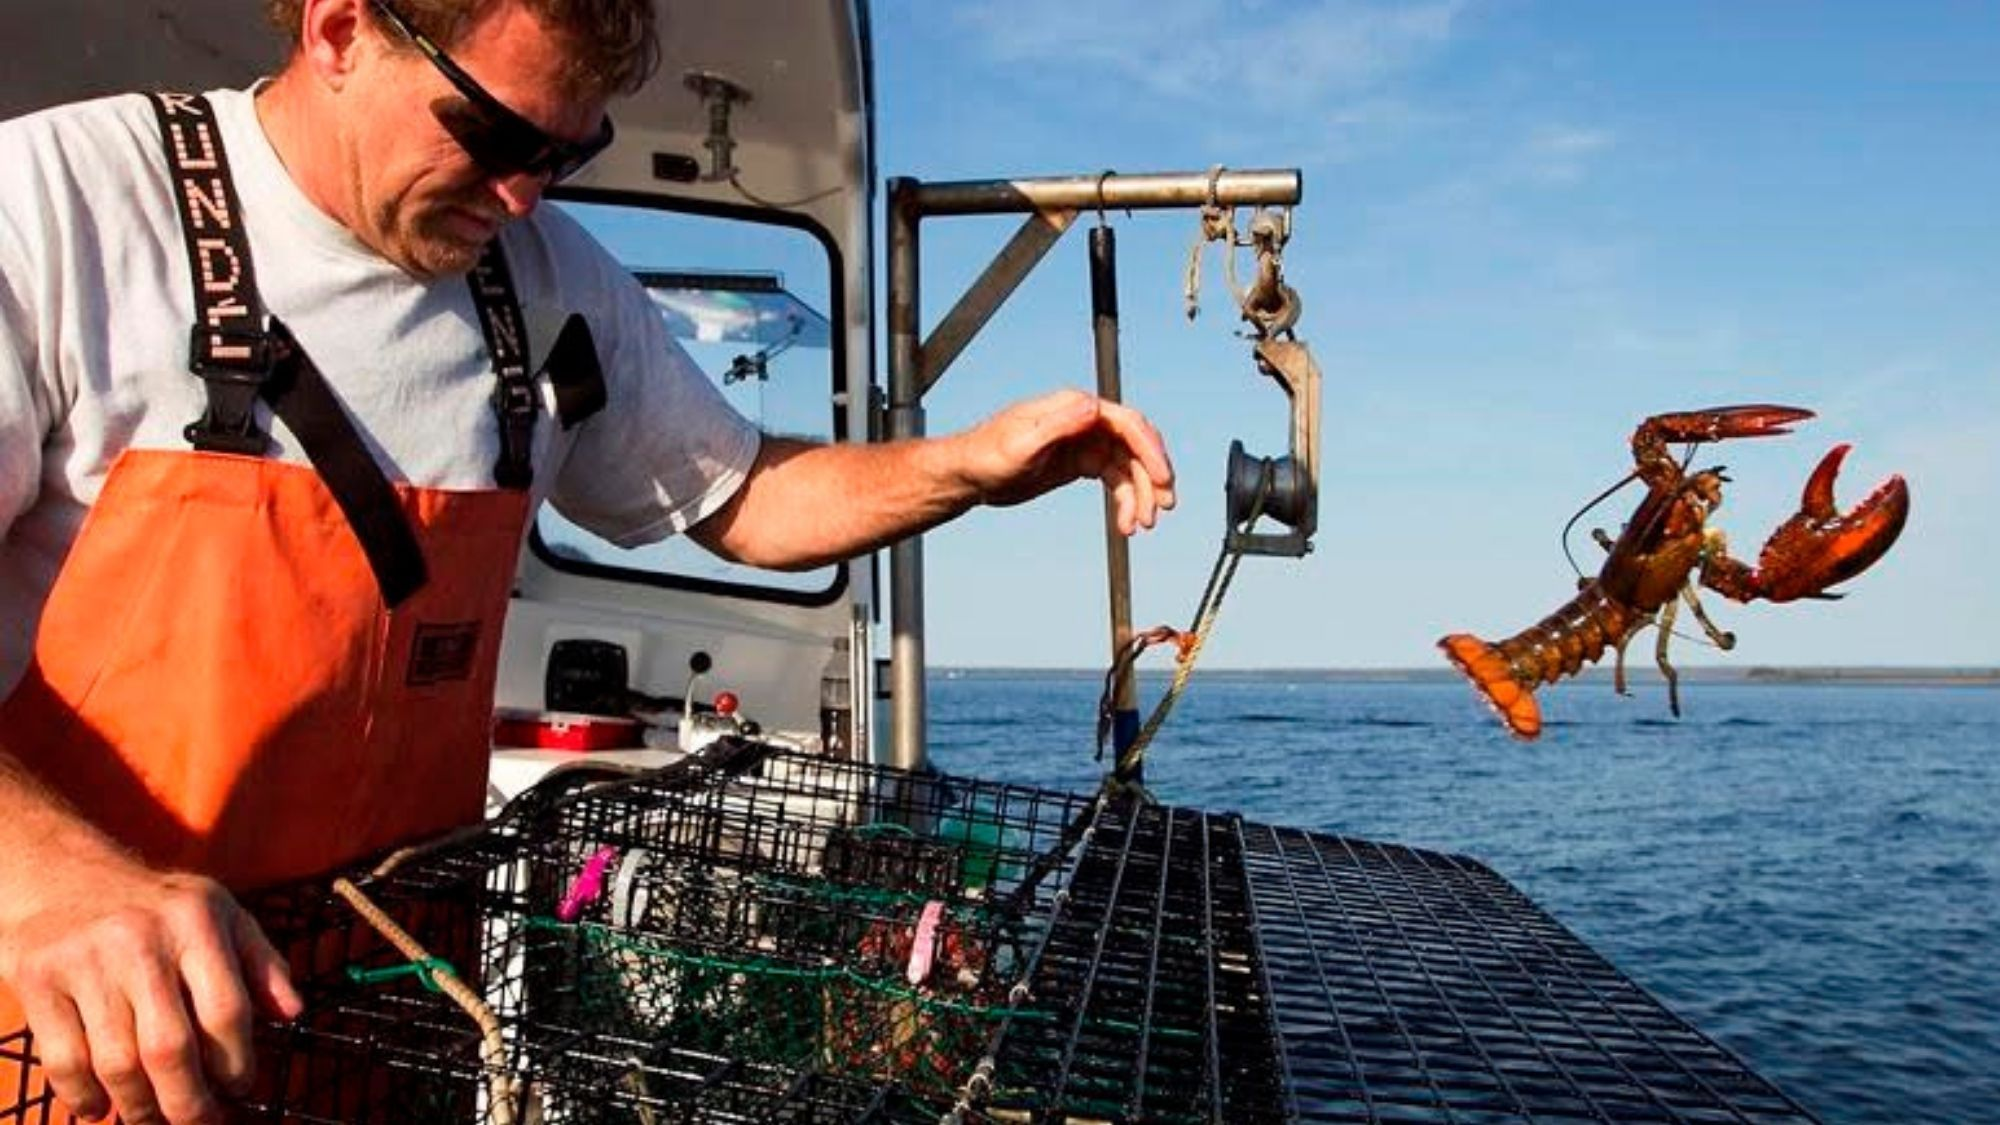 Bad news for lobster lovers: High demand hikes seafood prices this summer